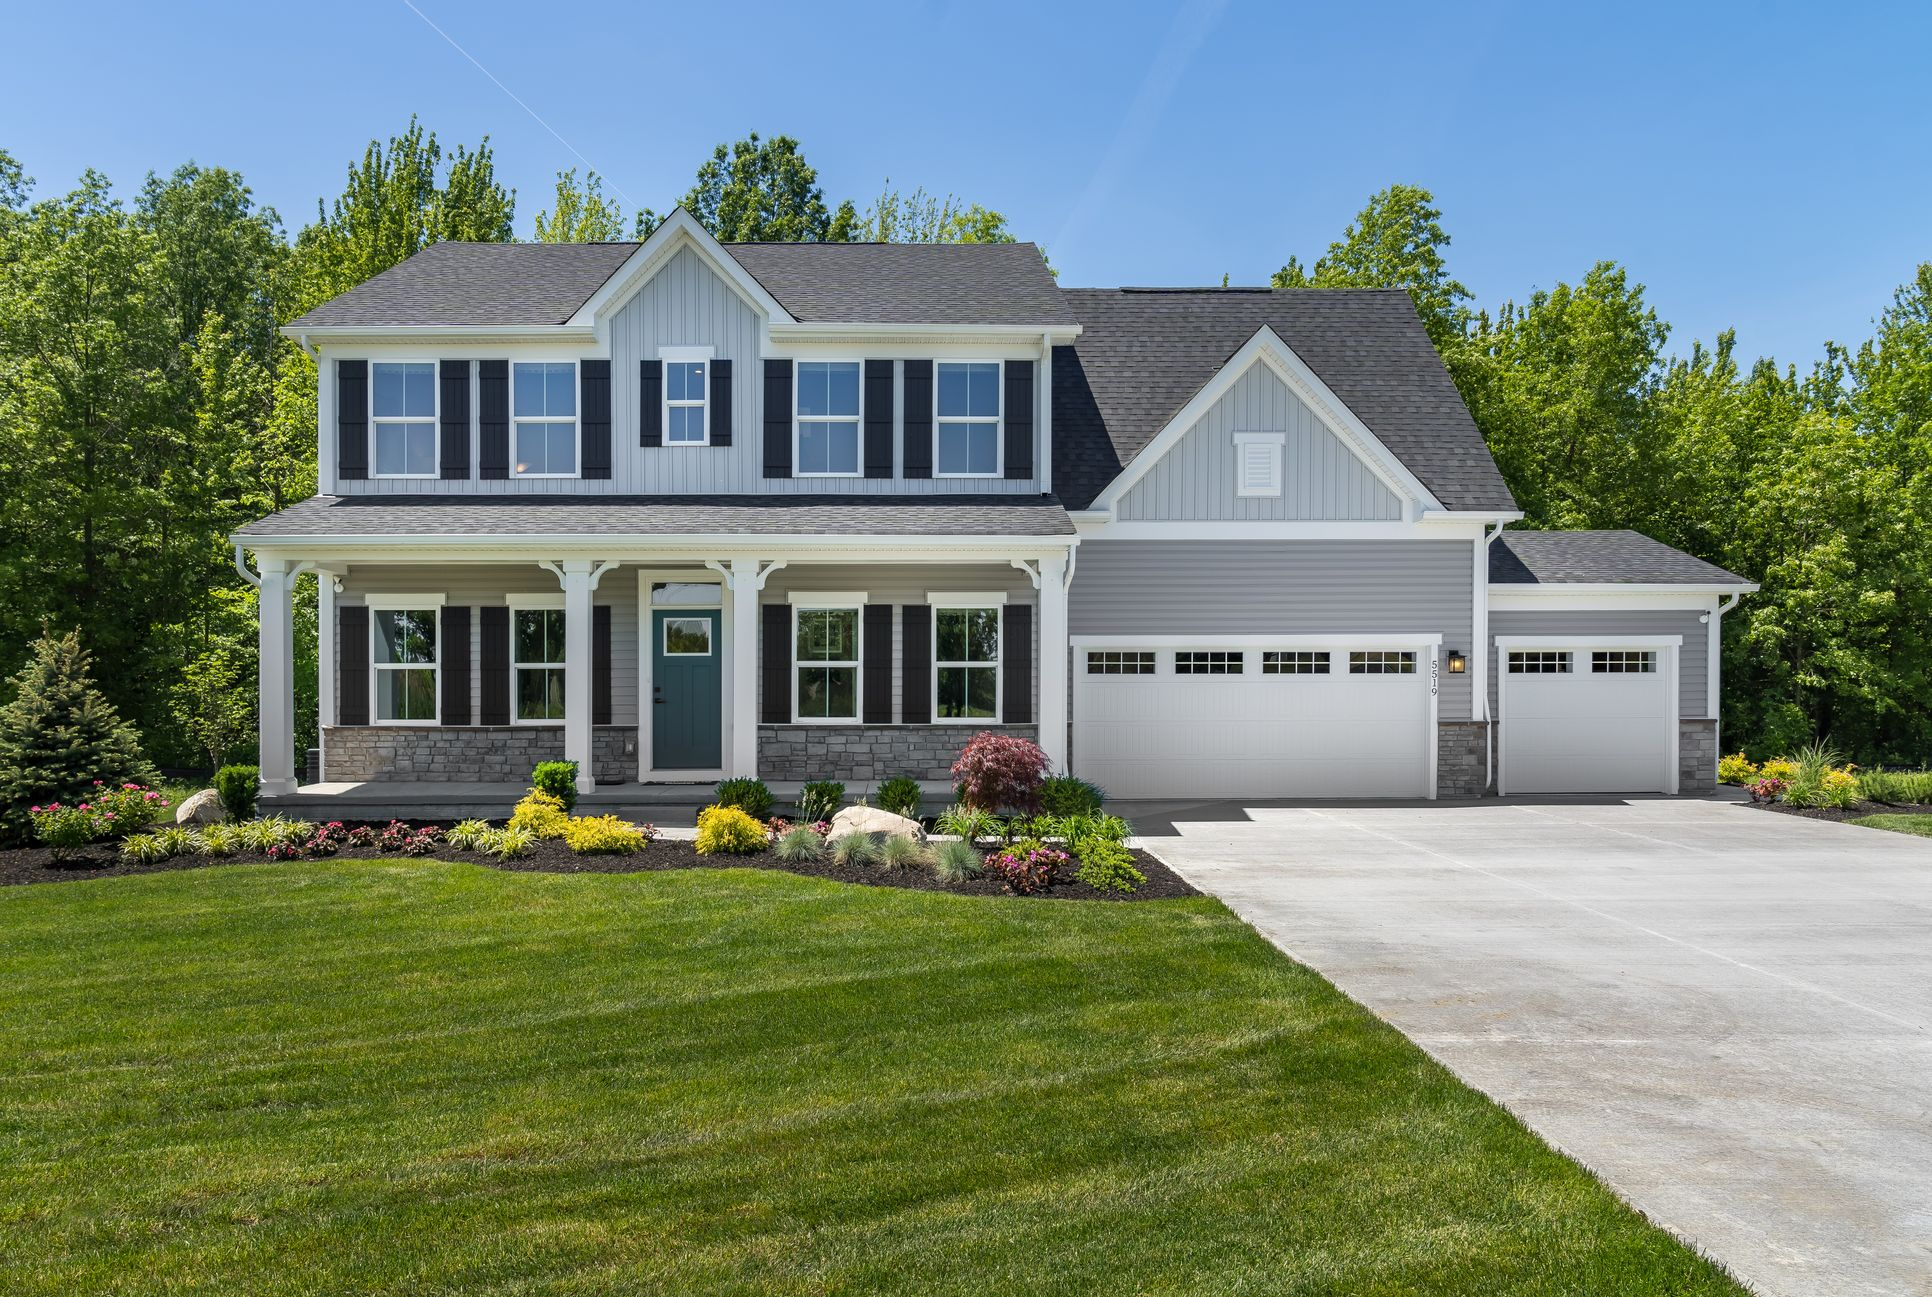 WELCOME HOME TO LEXINGTON FARMS:Ranch and 2-story homes with homesites up to 1 acre—from mid $200s! Minutes from all your daily needs at Washington Square.Click here to schedule your 1-on-1 or virtual visit today!